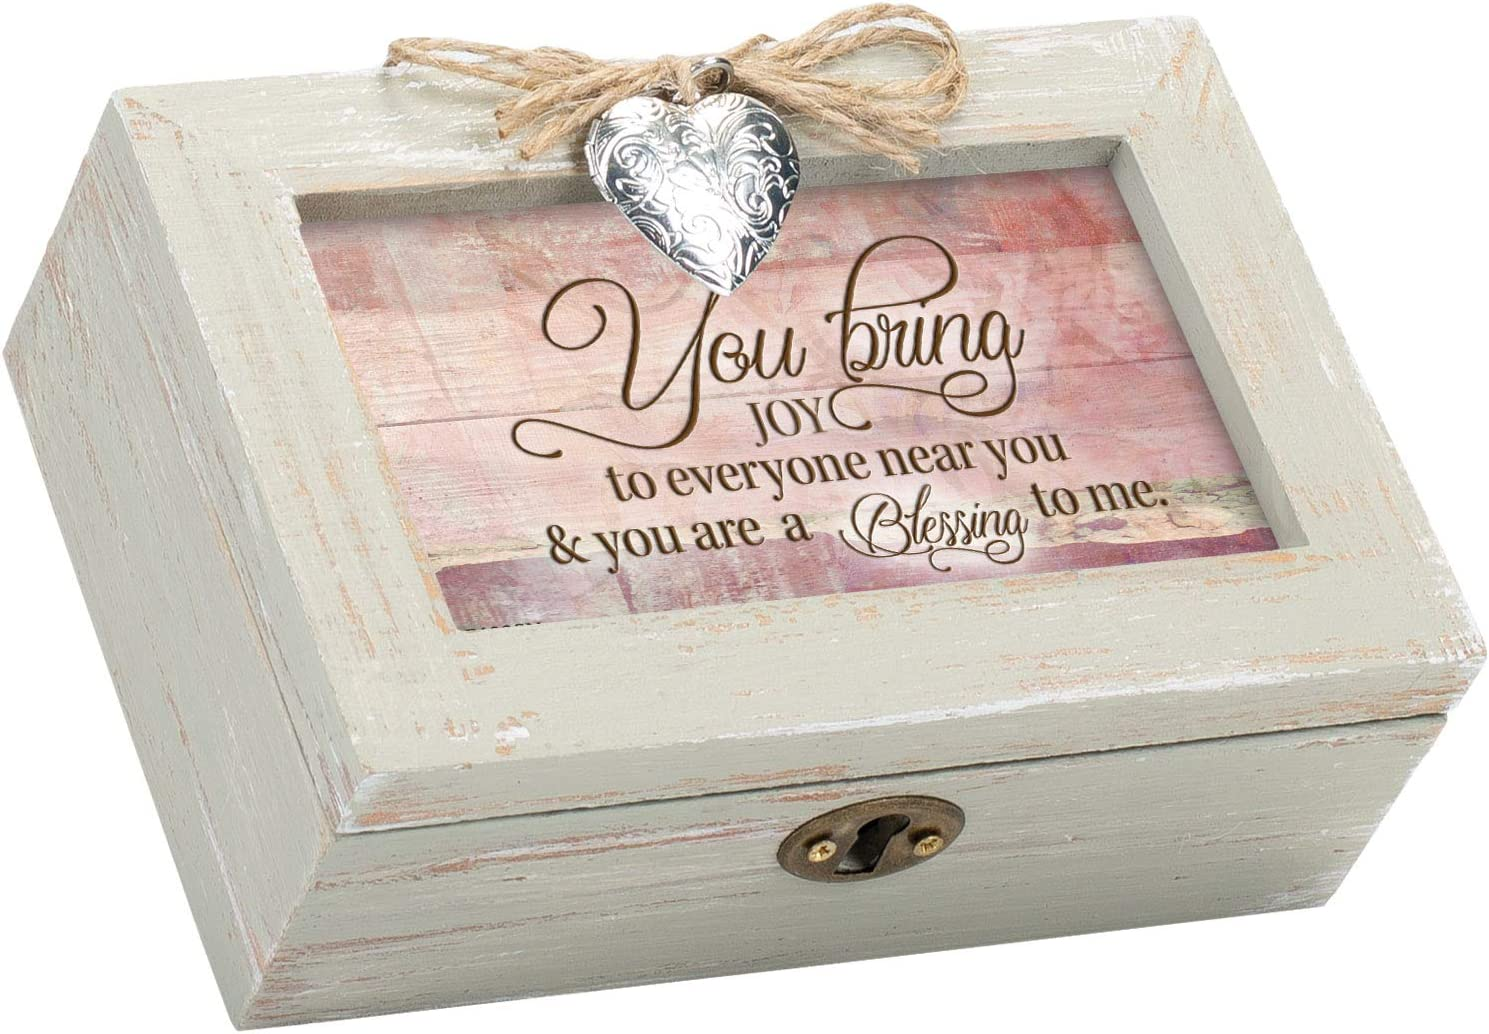 Cottage Garden You Bring Joy Blessing to Me Natural Taupe Wood Locket Petite Music Box Plays Amazing Grace